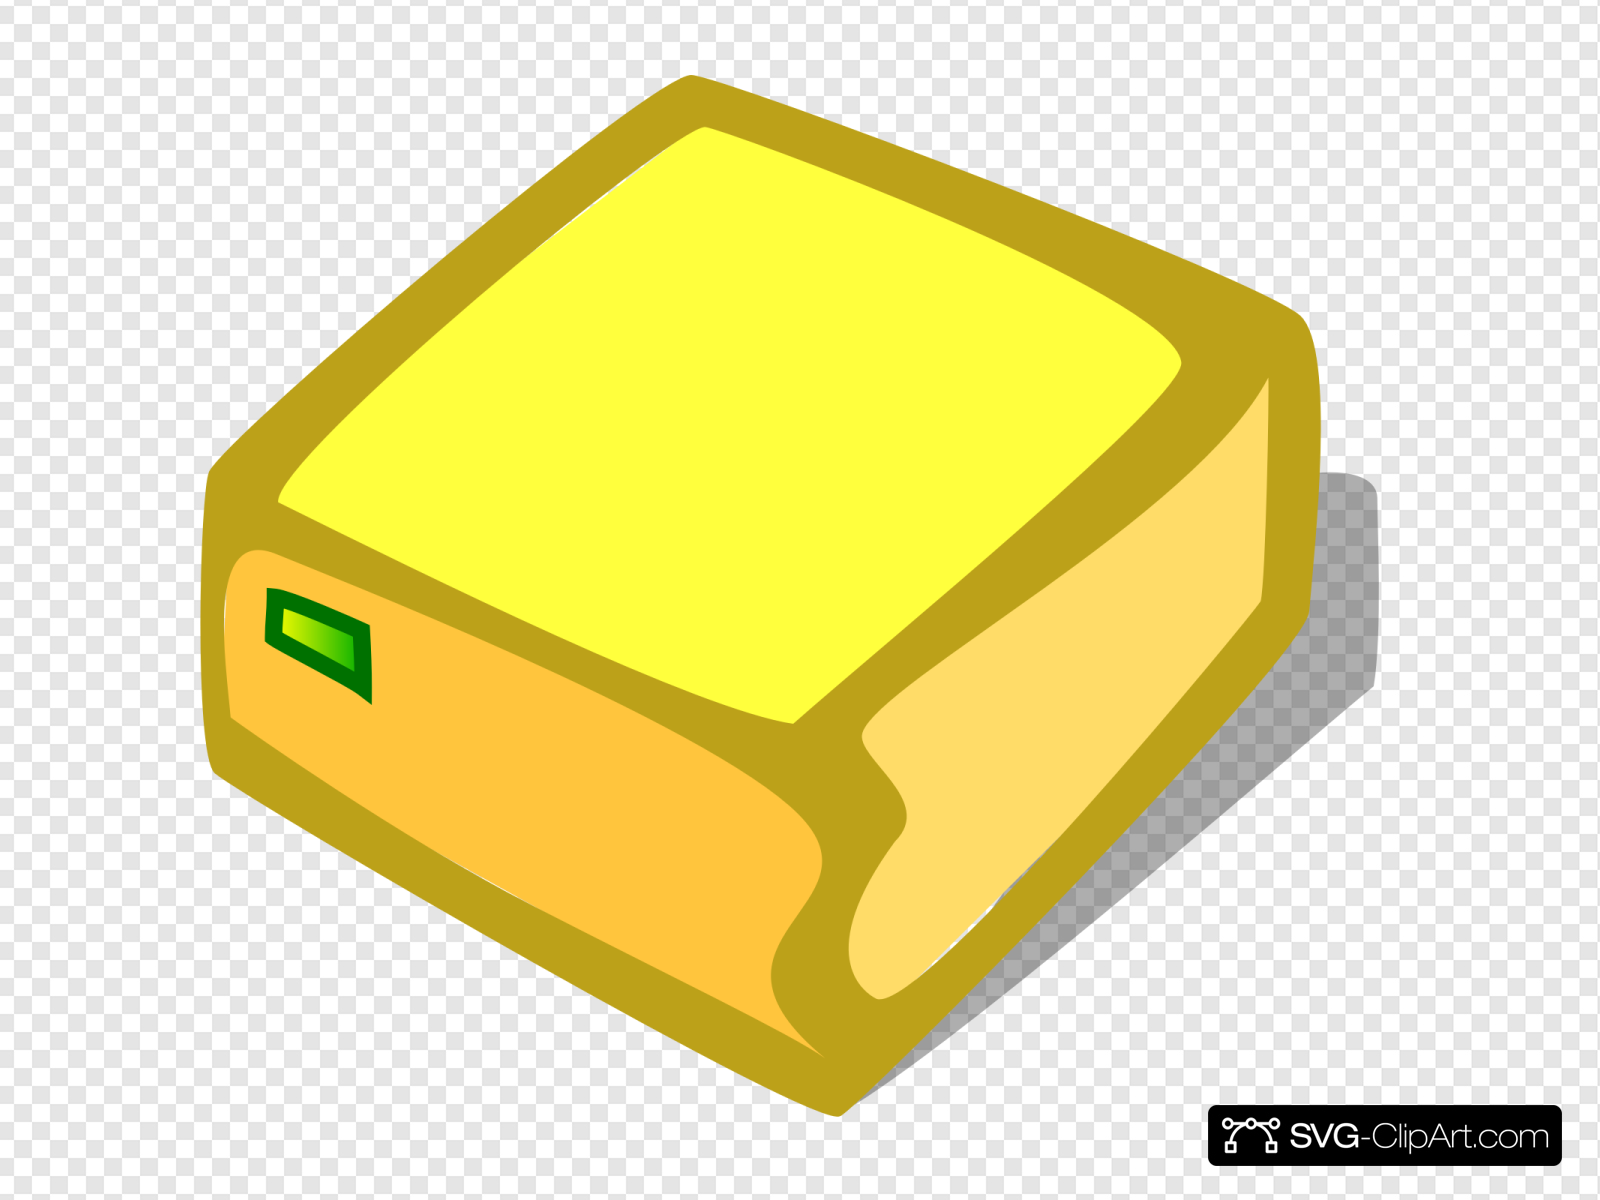 Yellow box clipart graphic library library Bright Yellow Box Clip art, Icon and SVG - SVG Clipart graphic library library